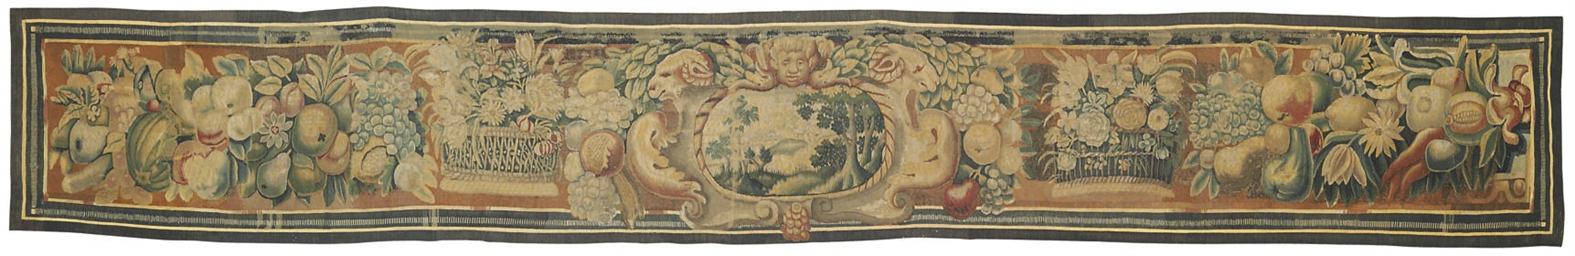 A FINE FLEMISH TAPESTRY BORDER